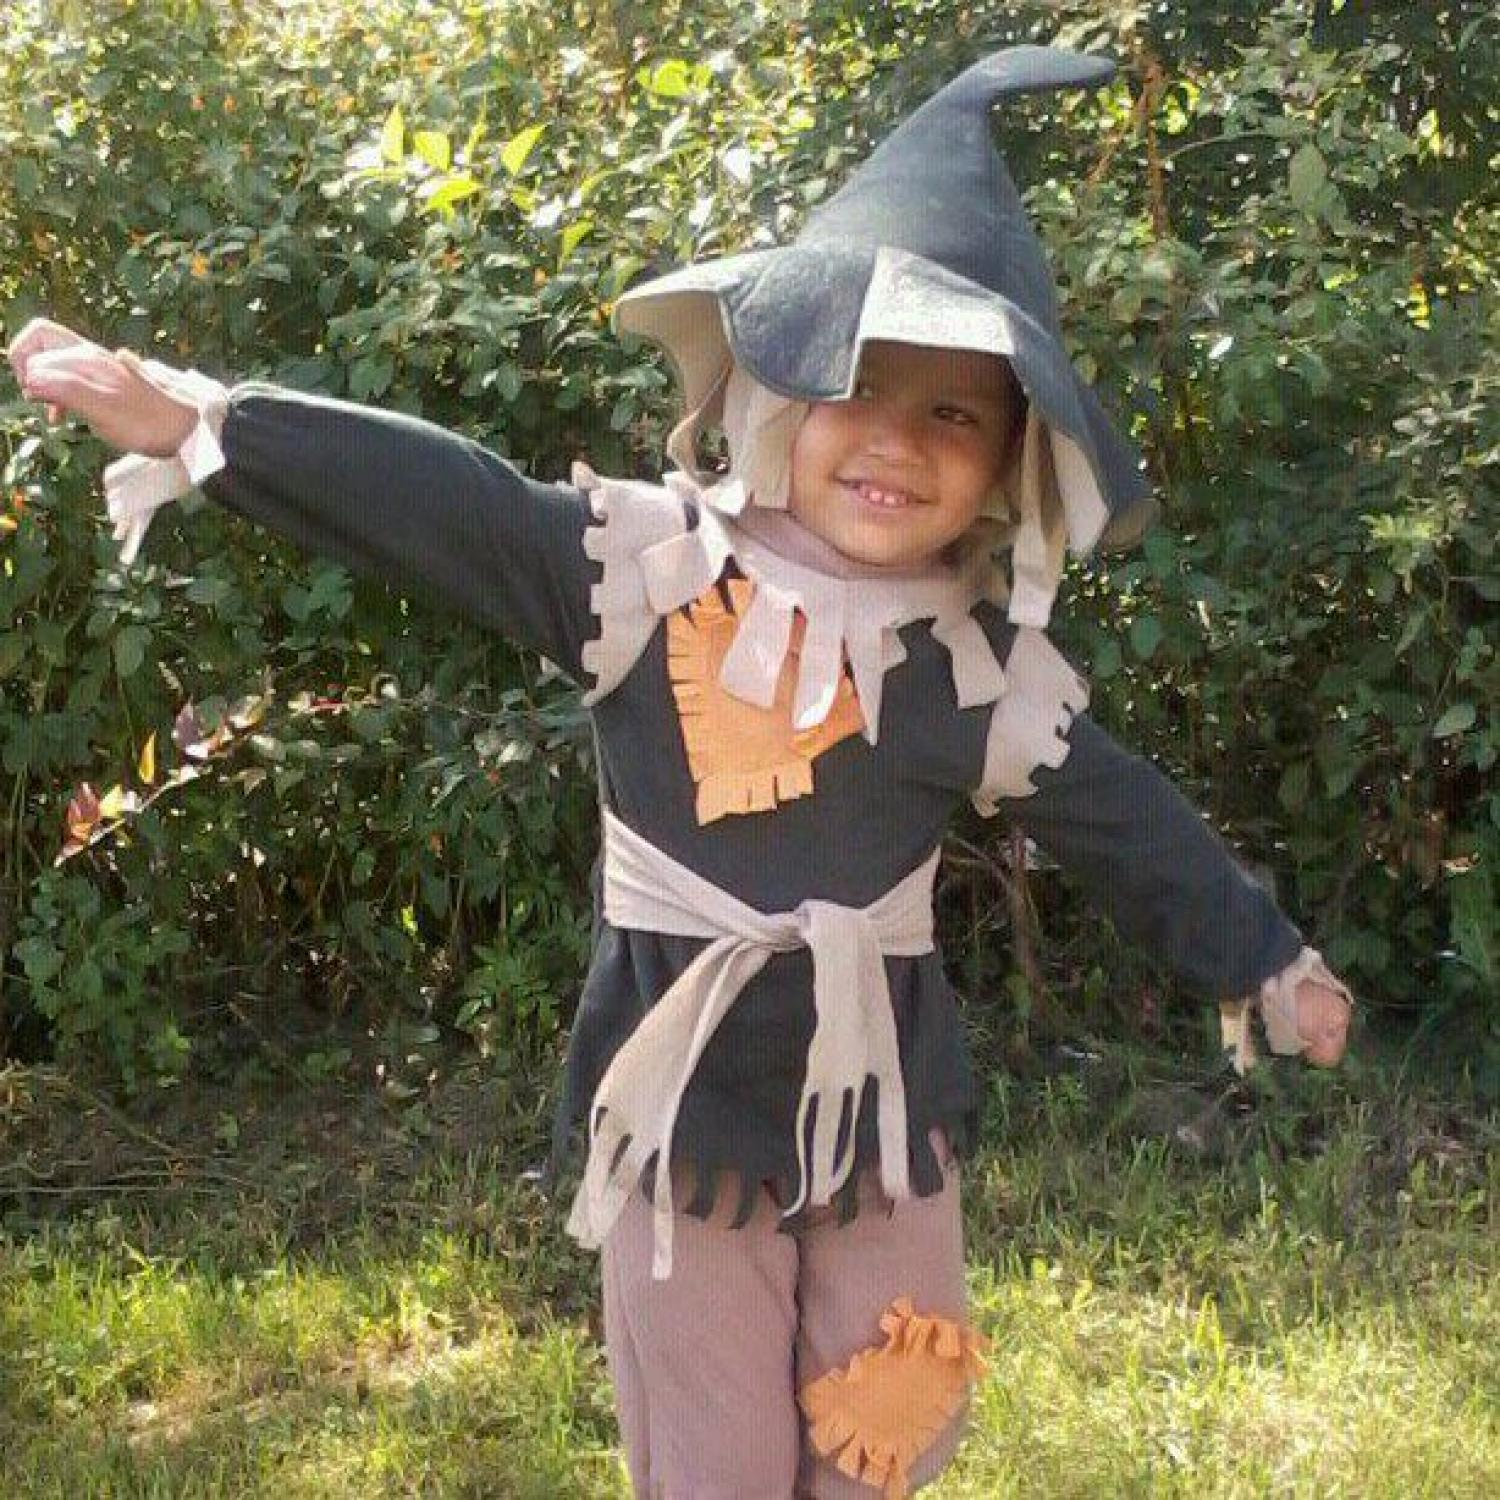 kids best halloween costume ideas - Best Site For Halloween Costumes